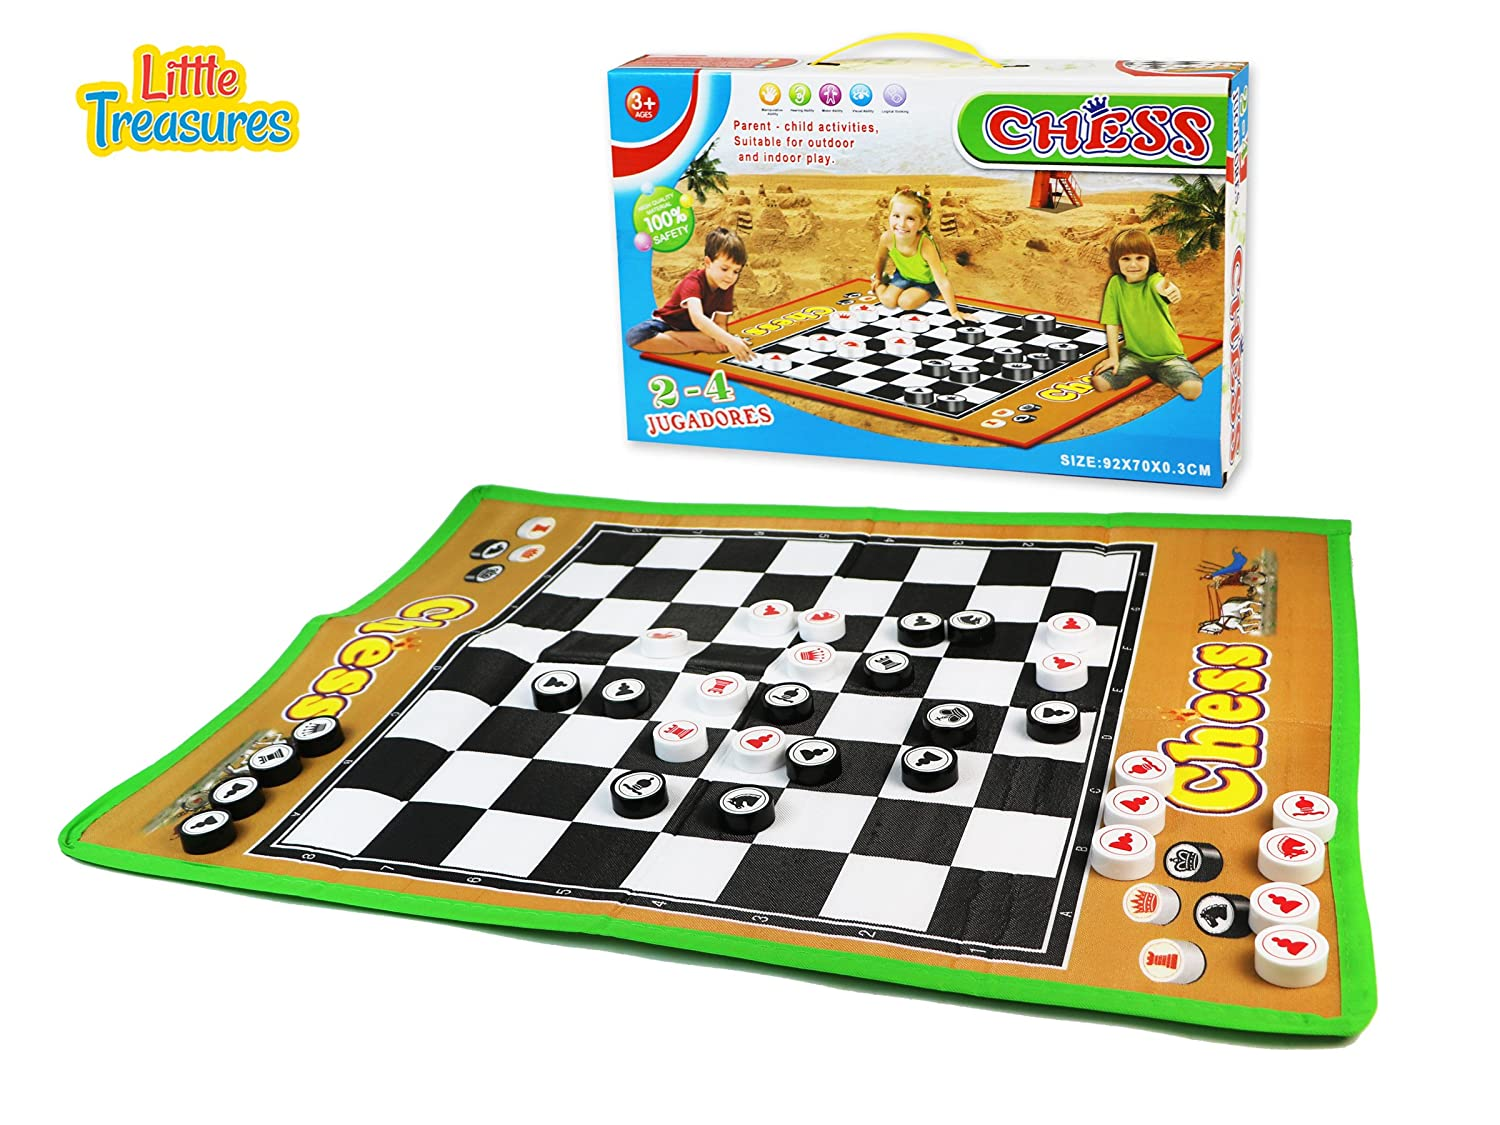 【人気No.1】 Jumbo Chess Indoor and Outdoor Board game - Cognitive Family Indoor Outdoor Learning for You and Your Family B01N0A995N, Yamato Market Creation:a18a00d7 --- cygne.mdxdemo.com